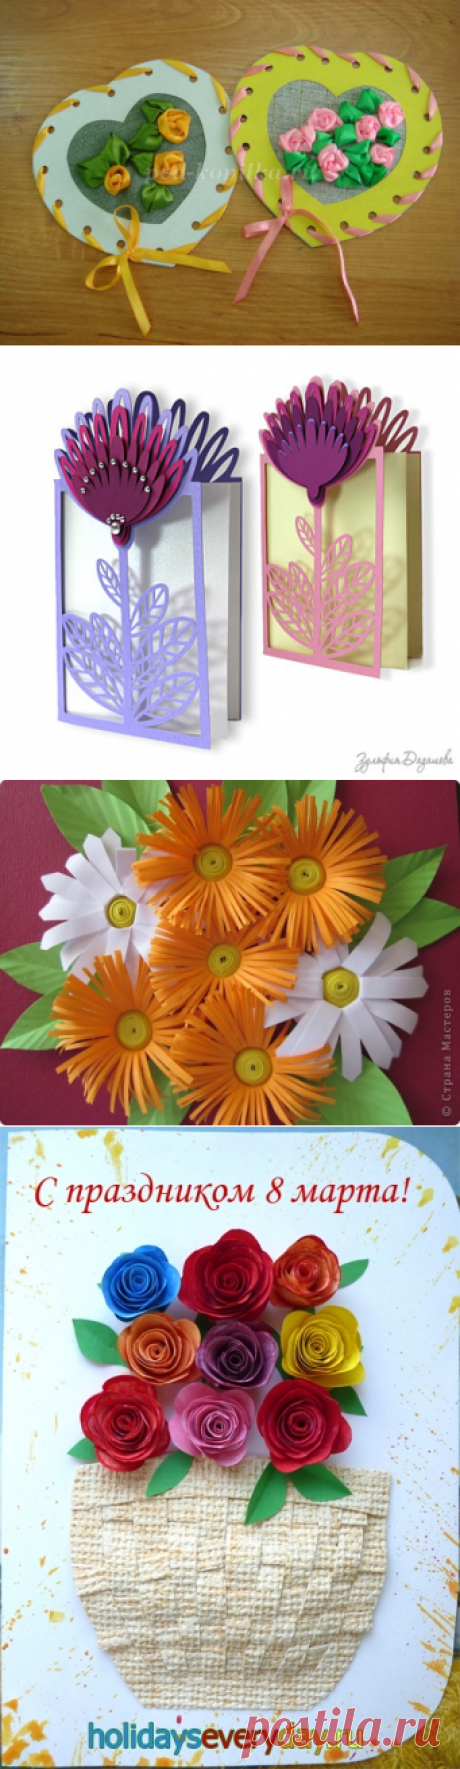 Ideas of the greeting cards made with own hands by March 8 - Cards